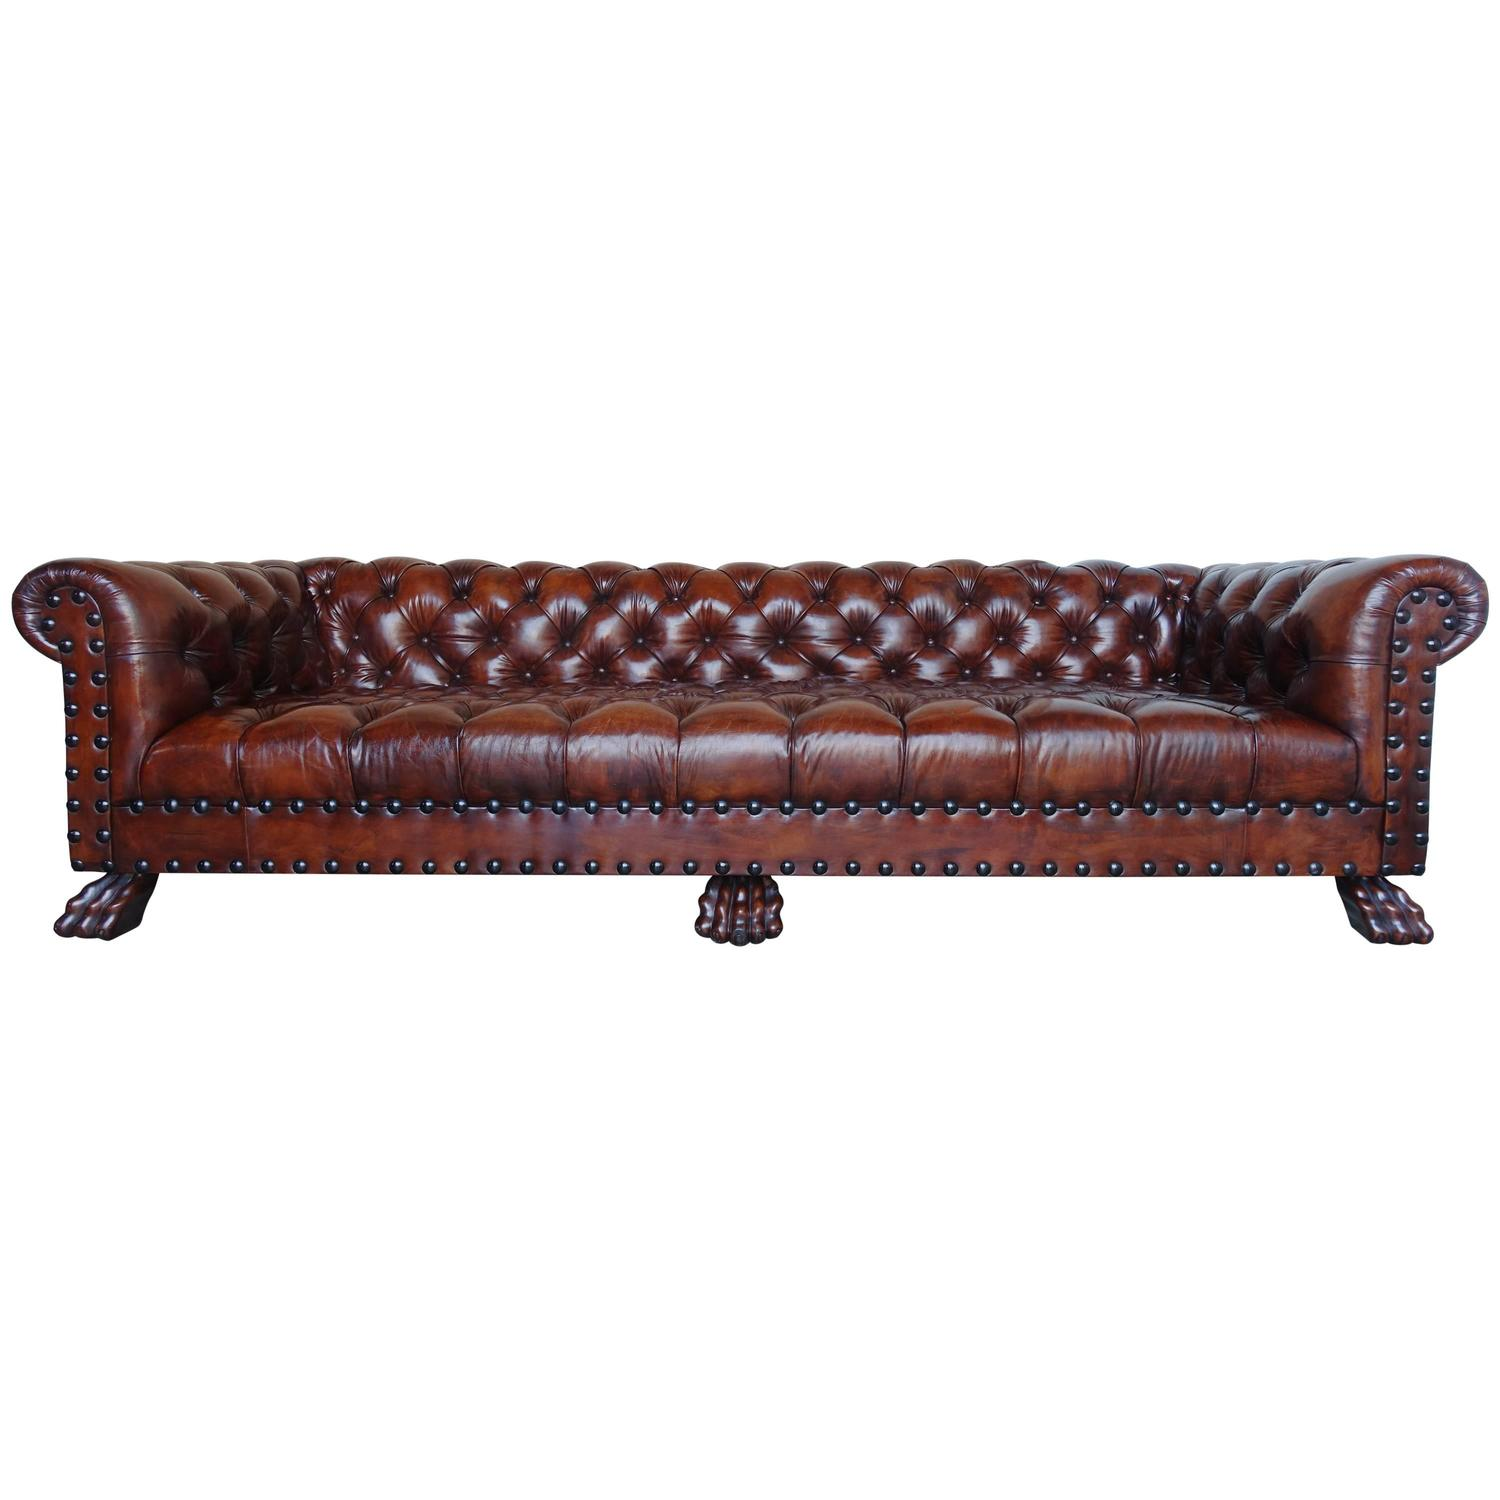 Monumental Chesterfield Leather Sofa With Nailhead Trim At 1stdibs